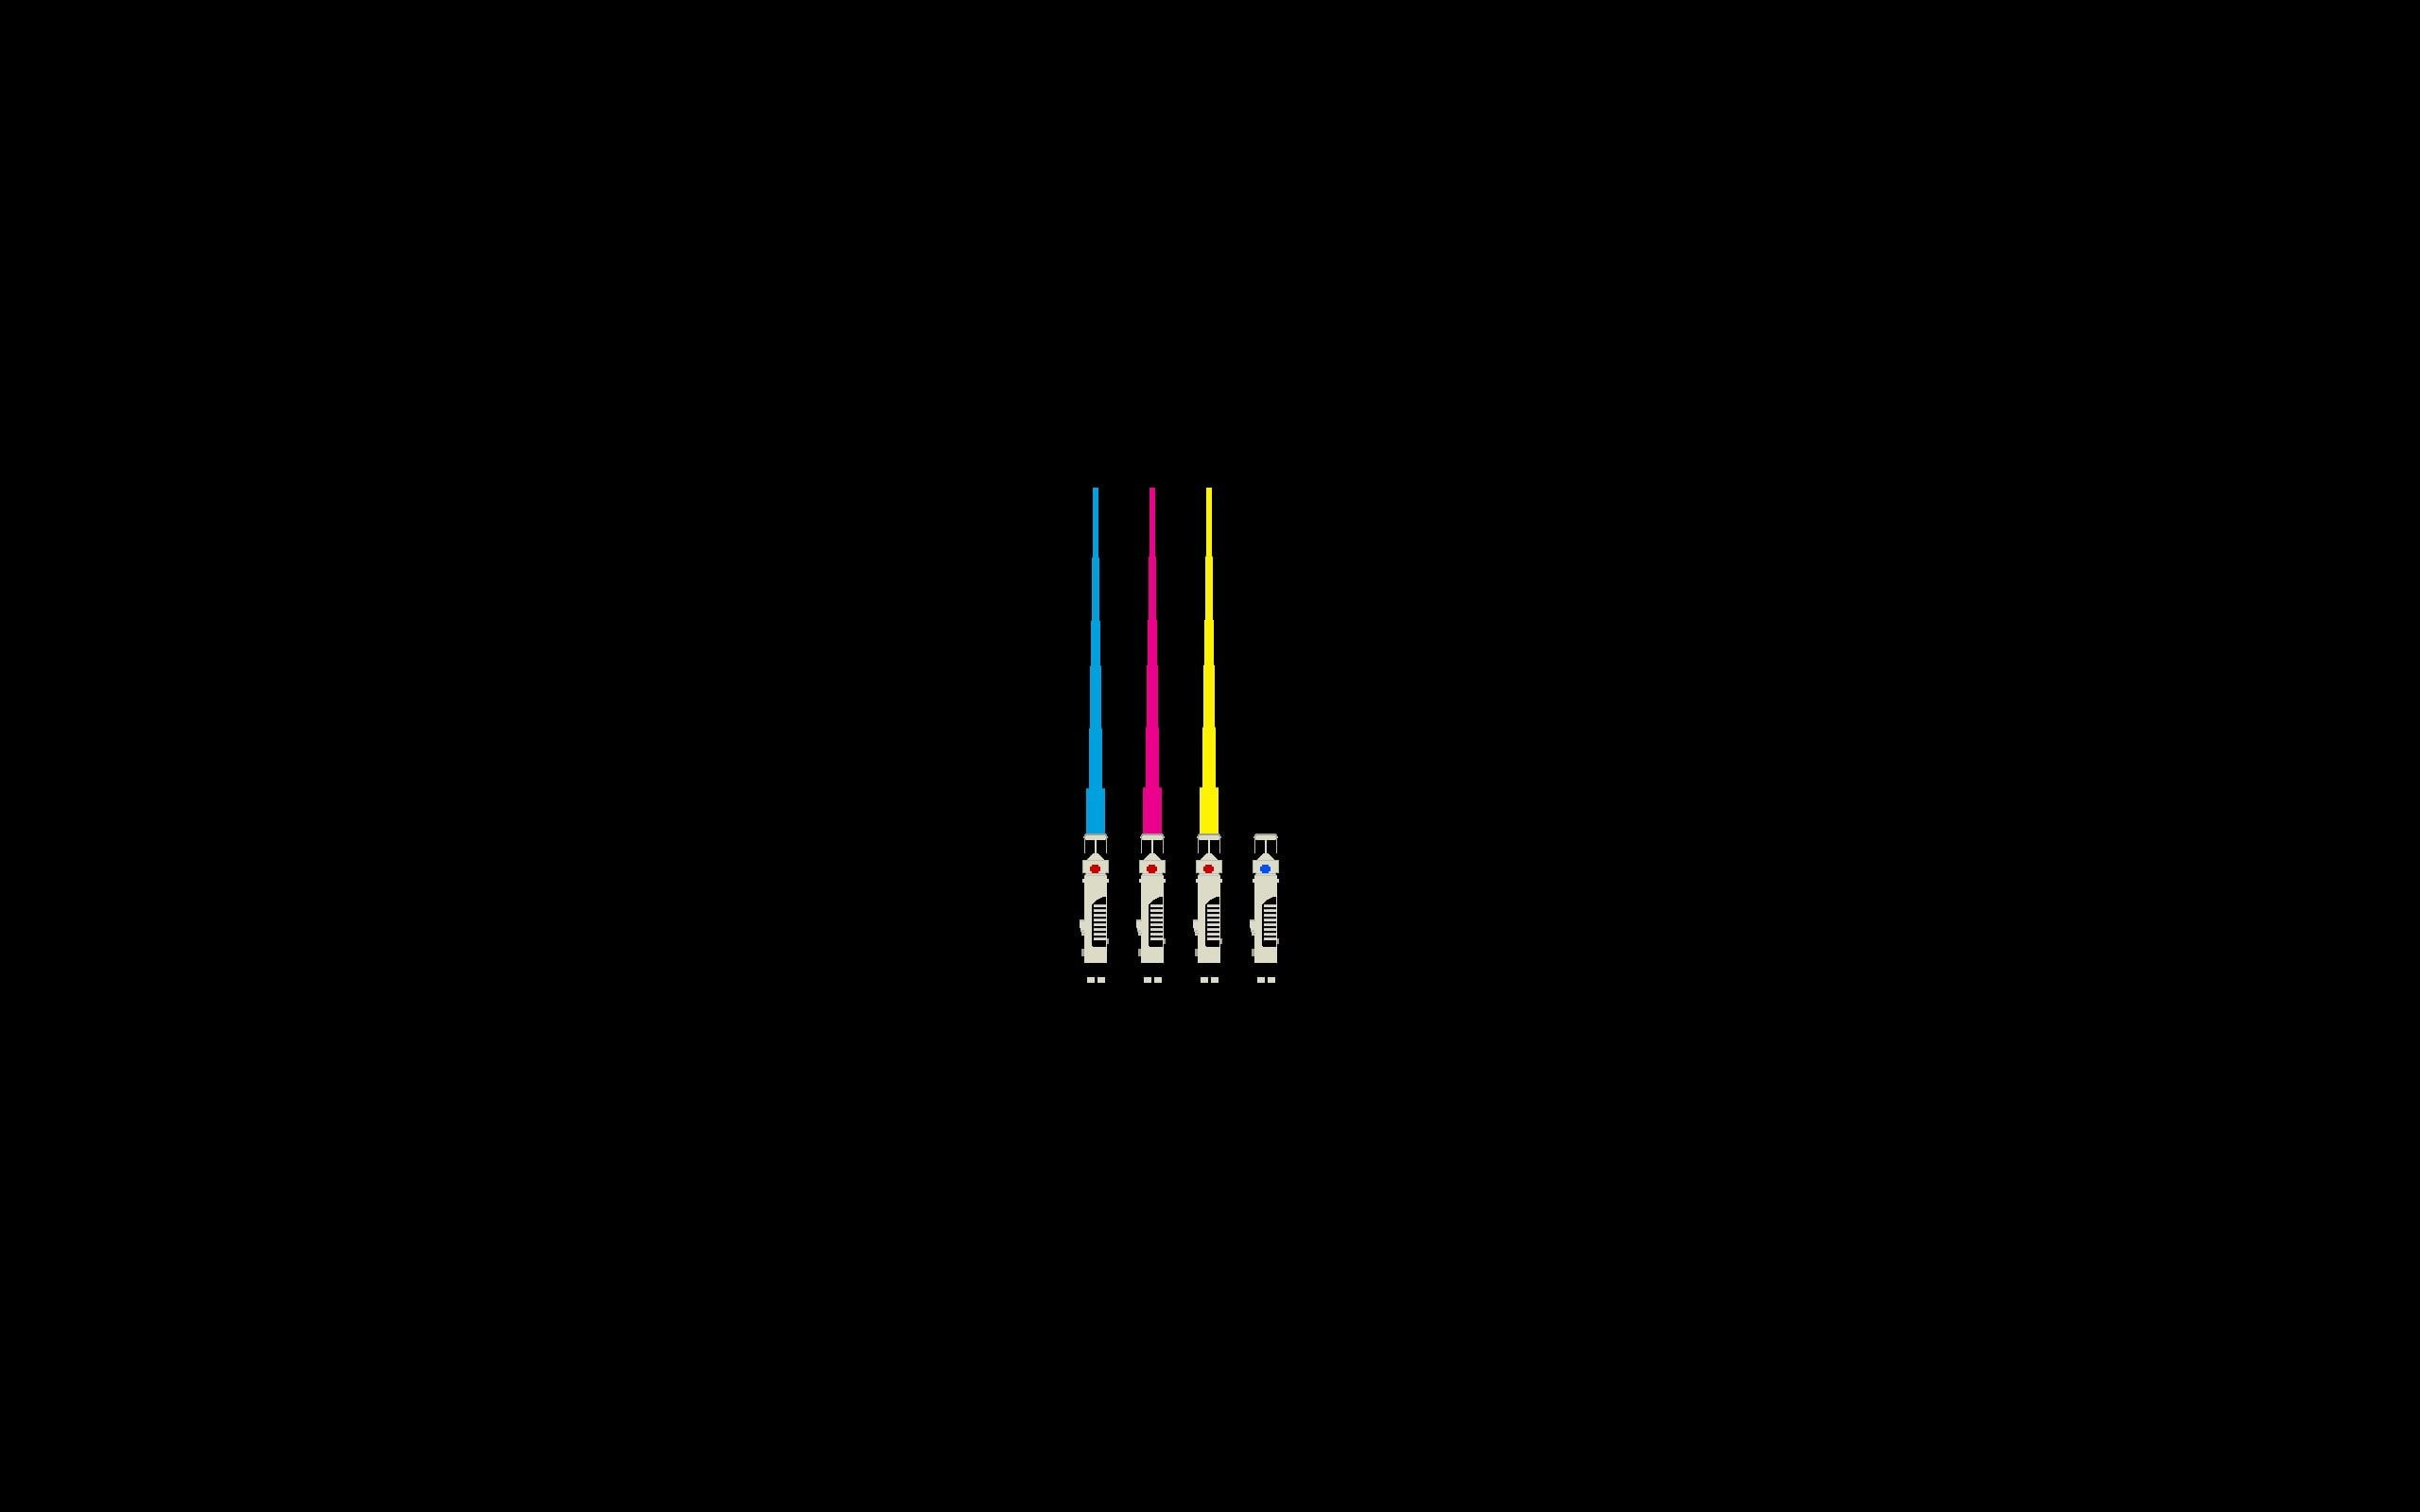 Star Wars Lightsaber Cmyk Minimalism 2k Wallpaper Hdwallpaper Desktop Minimalist Wallpaper Disney Minimalist Lightsaber